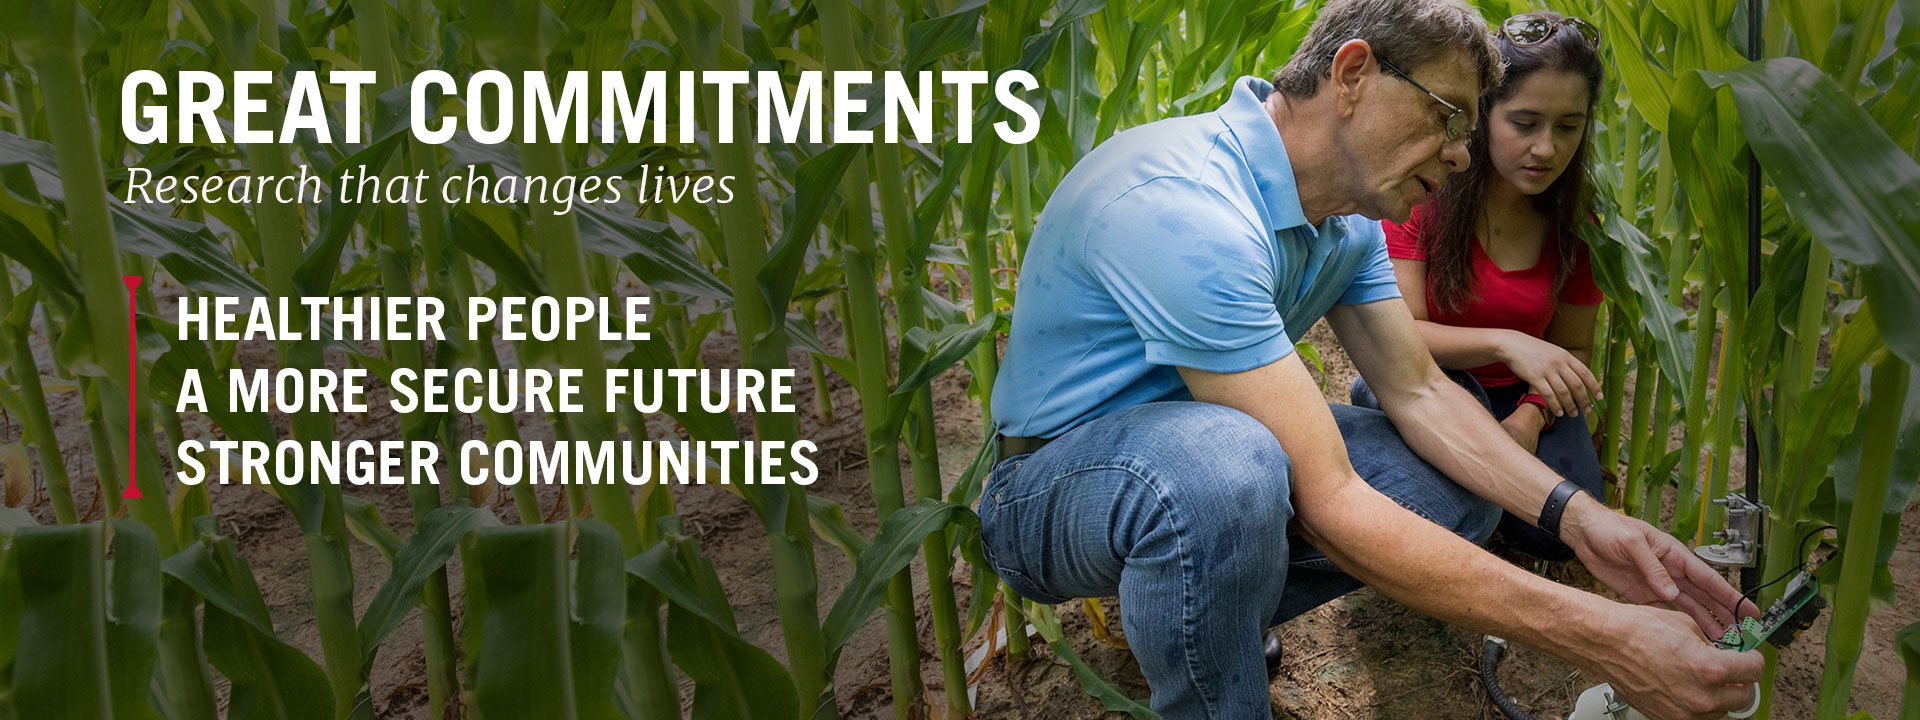 Great Commitments Research that changes lives Healthier People A More Secure Future Stronger Communities